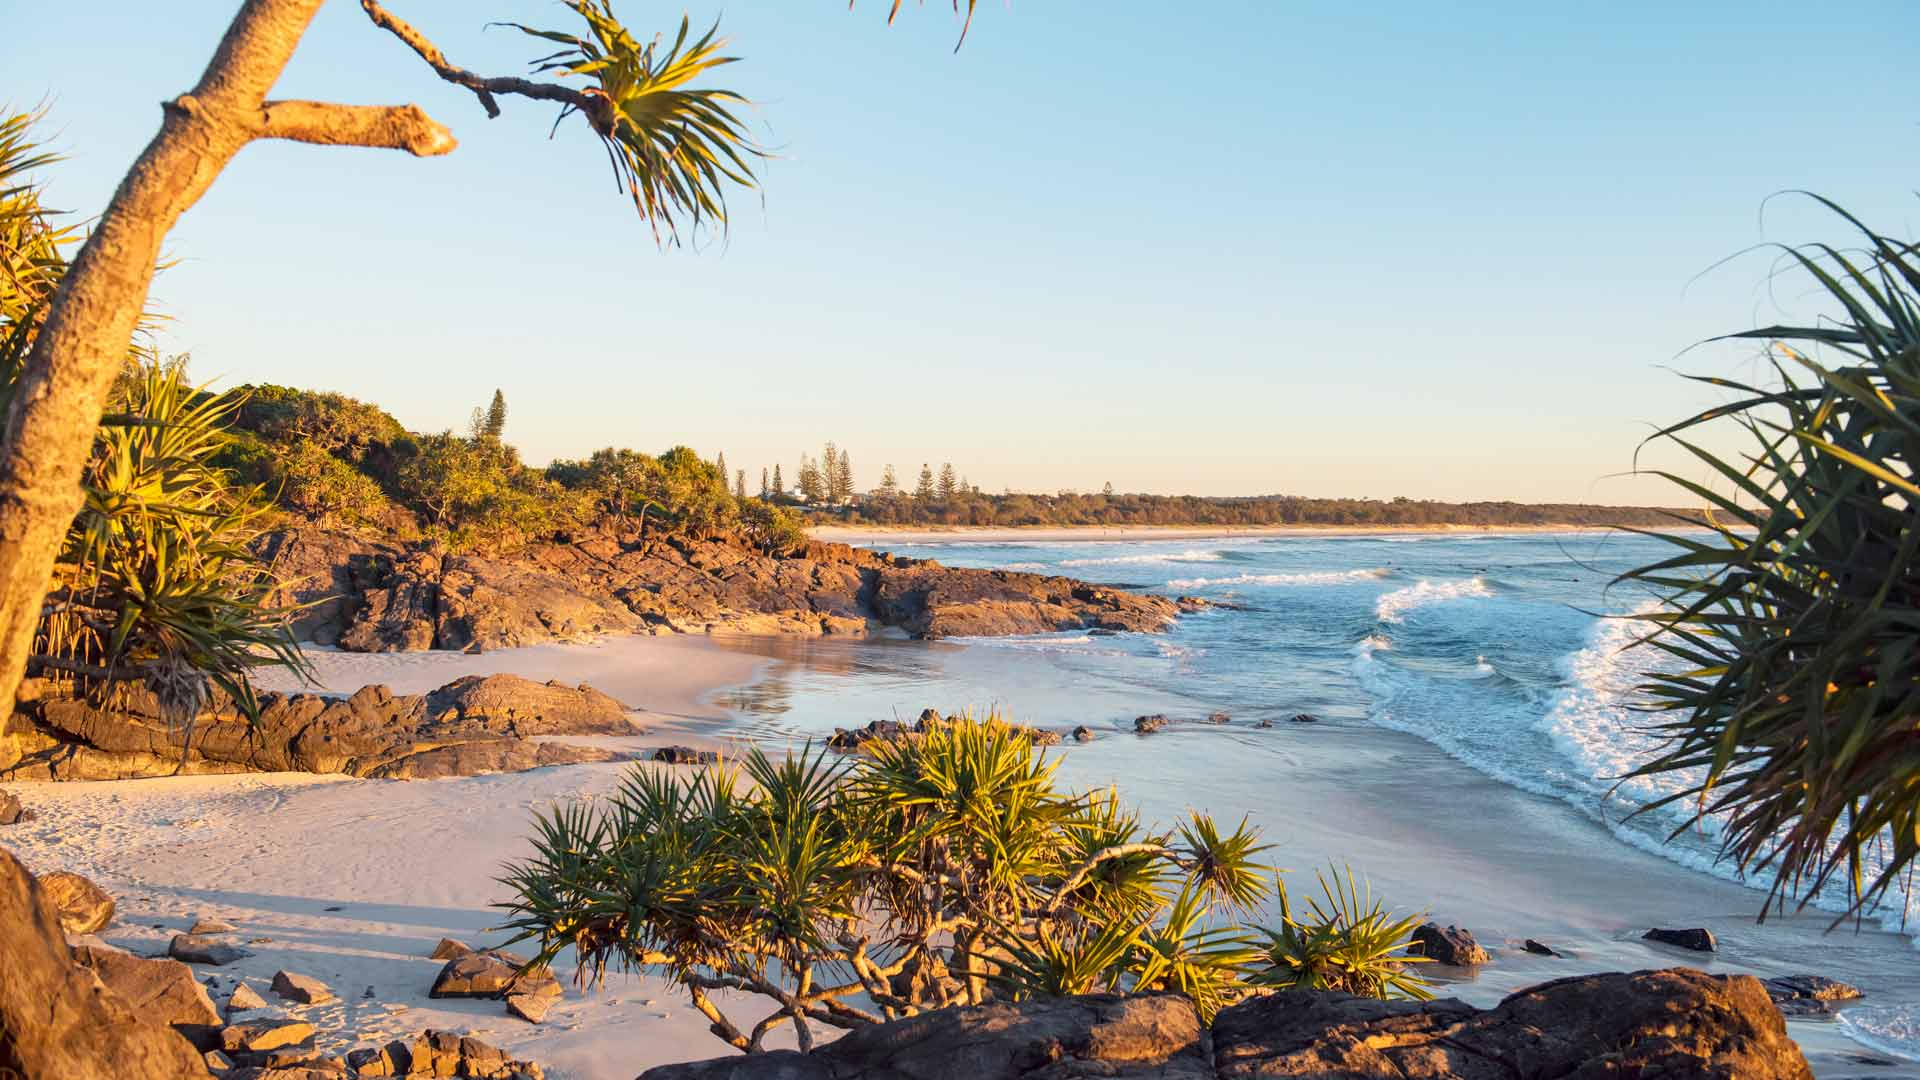 NSW's Cabarita Beach Has Been Named Australia's Best Beach for 2020